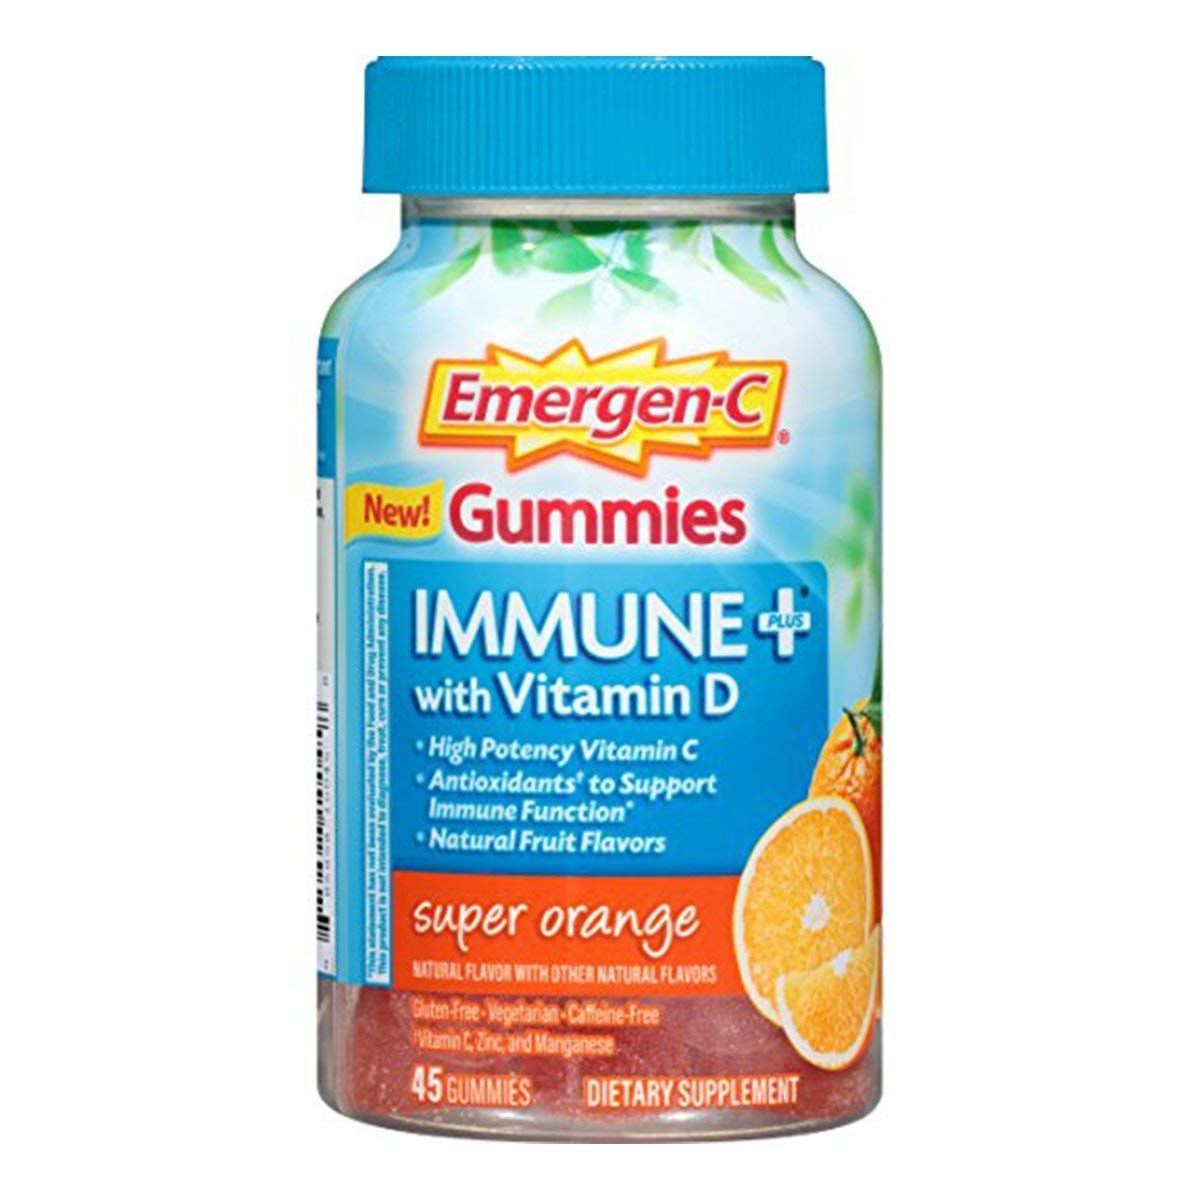 Emergen-C Immune+ Gummies (145 Count, Super Orange Flavor) Immune System Support with 500mg Vitamin C Dietary Supplement, Caffeine Free, Gluten Free (Super Orange, 145 Count)